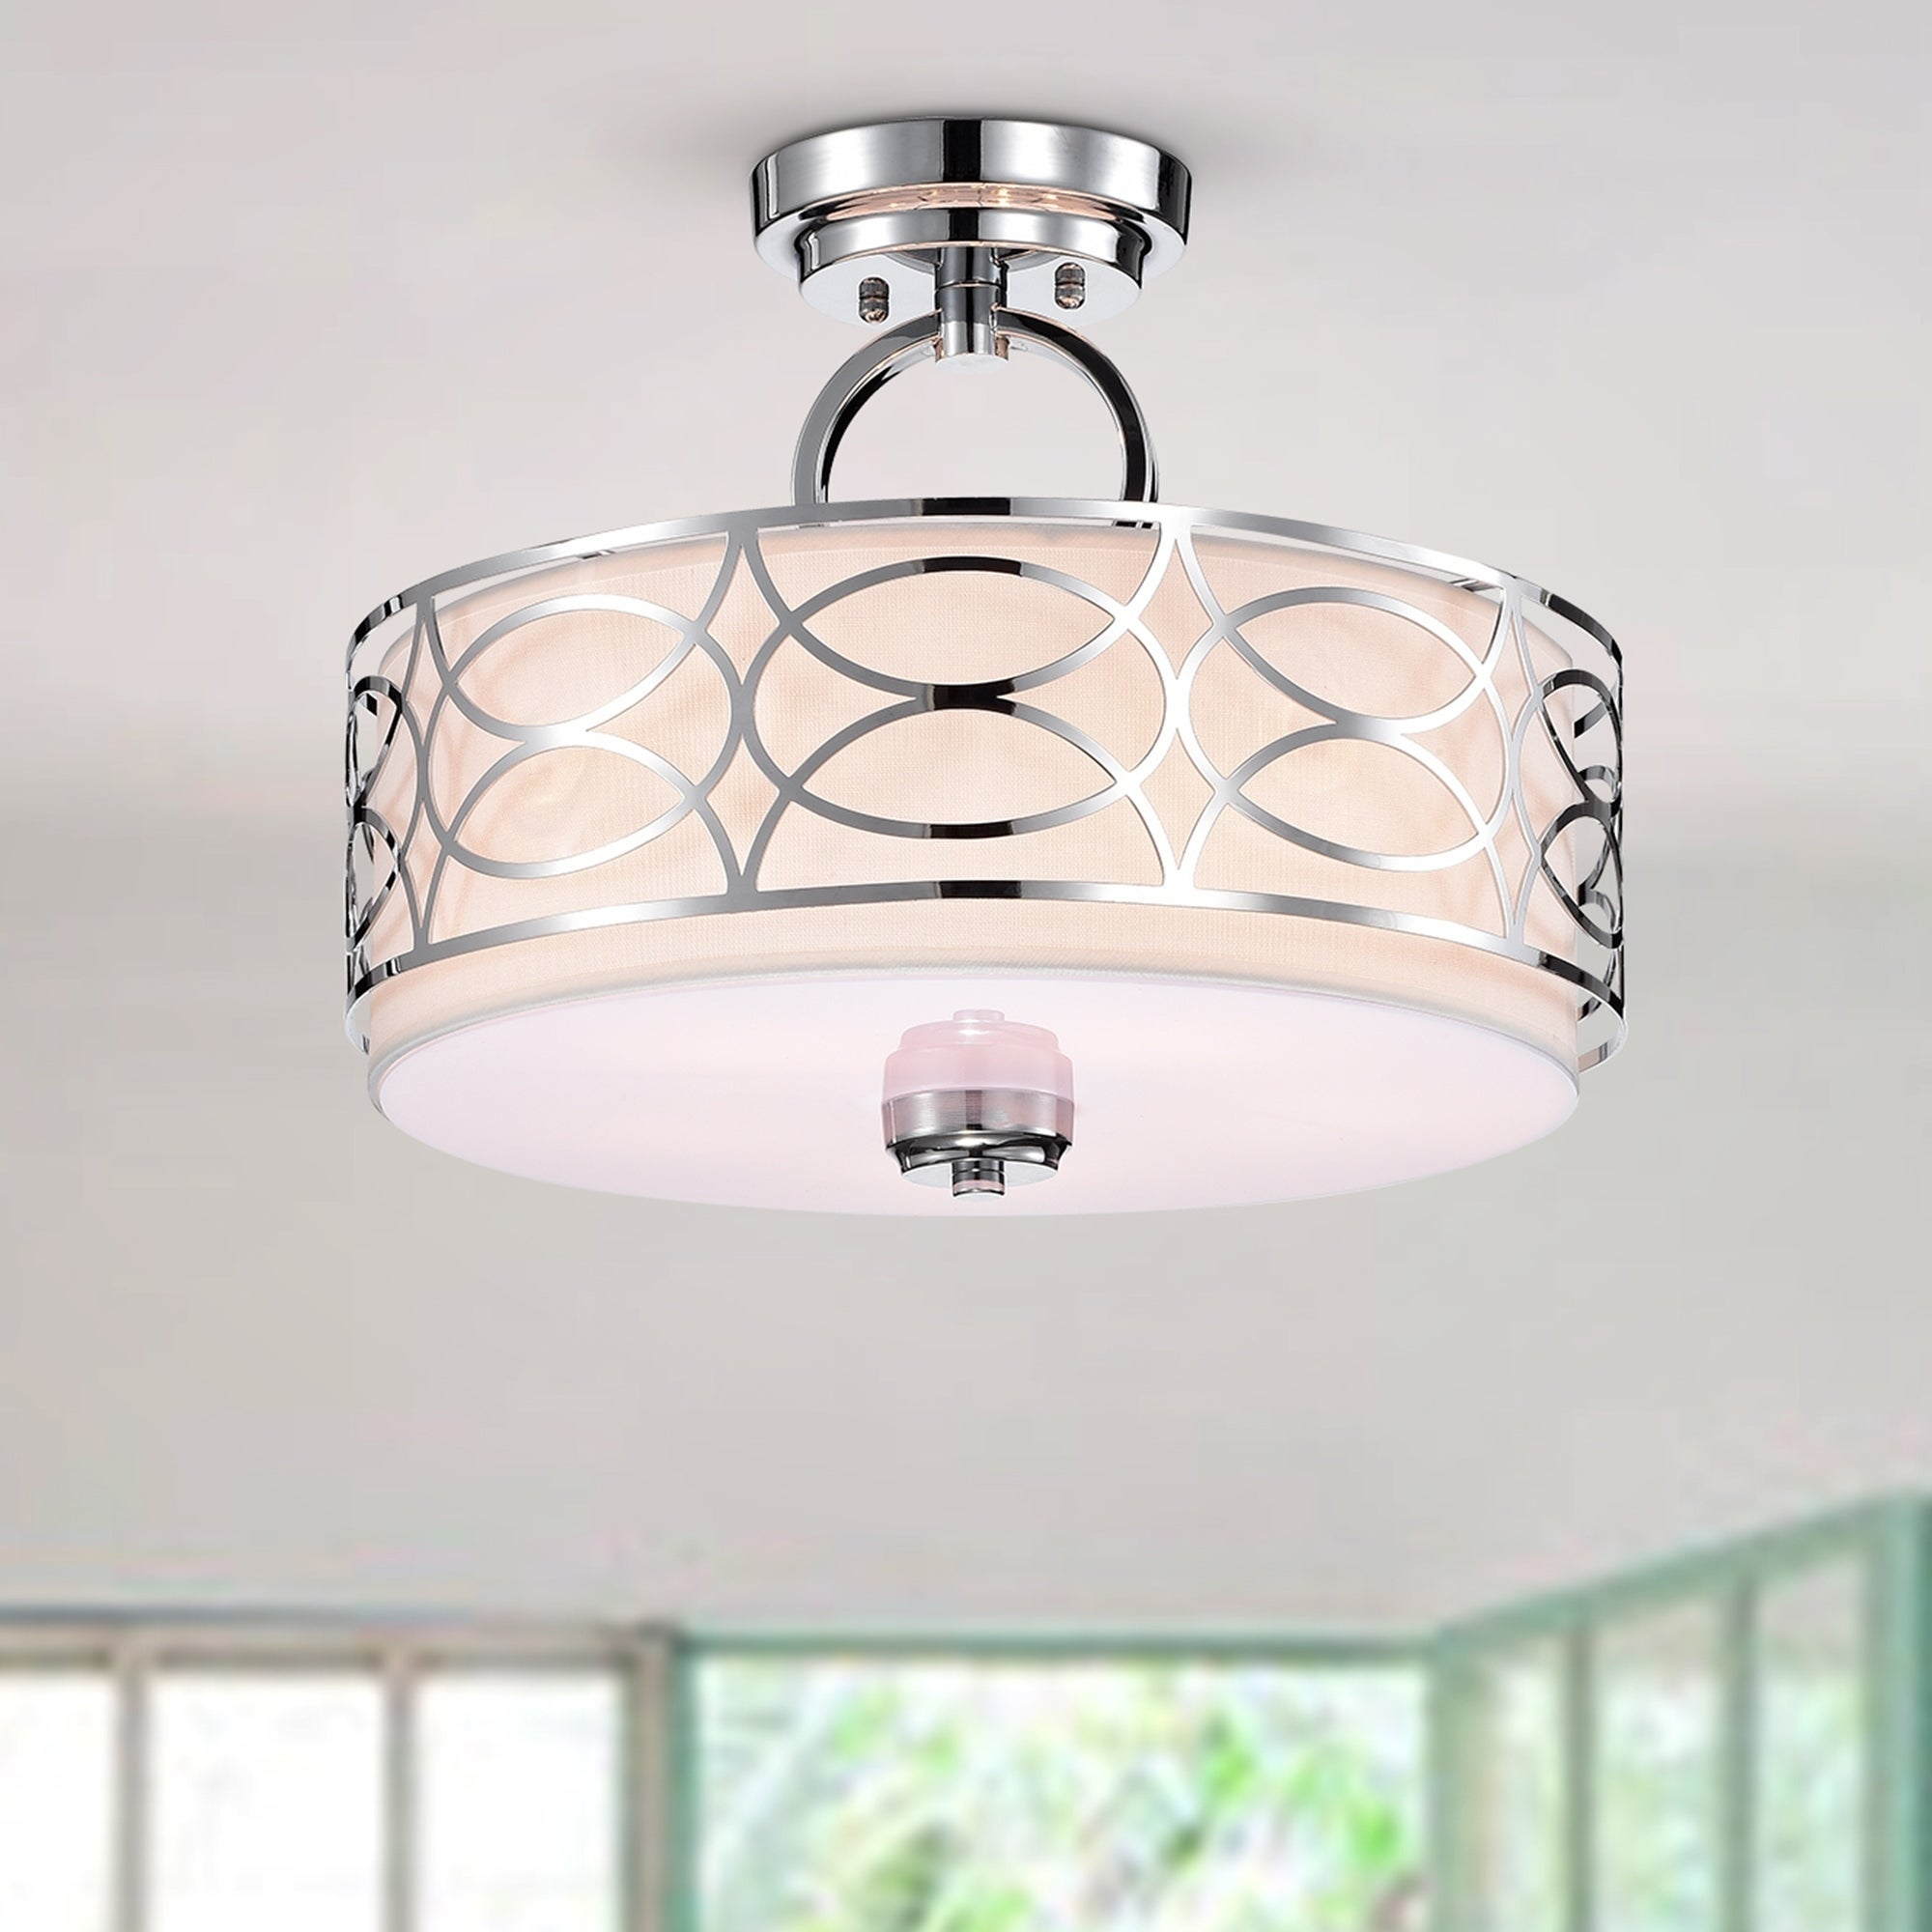 Spennz 5 Light Chrome Design Semi Flush Mount Ceiling Lamp